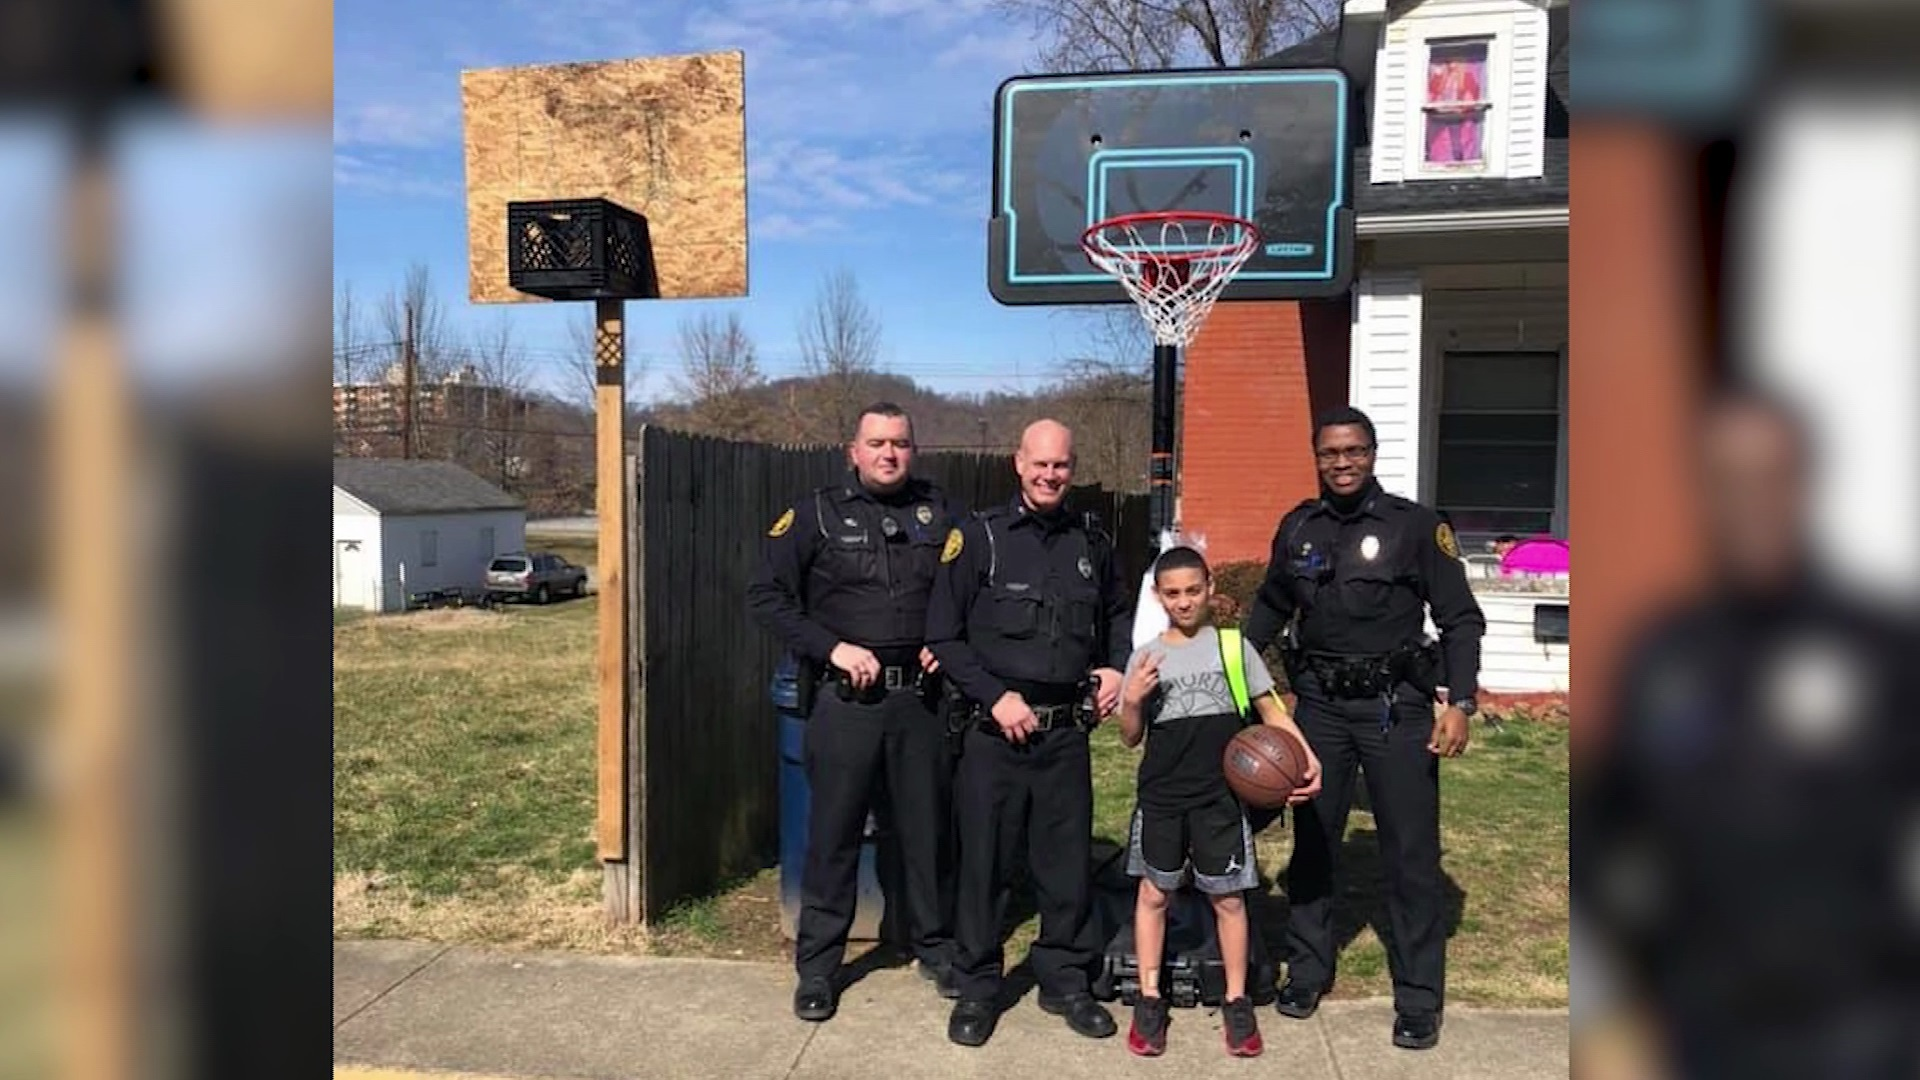 Ashland Police Help Get Local Boy New Basketball Hoop